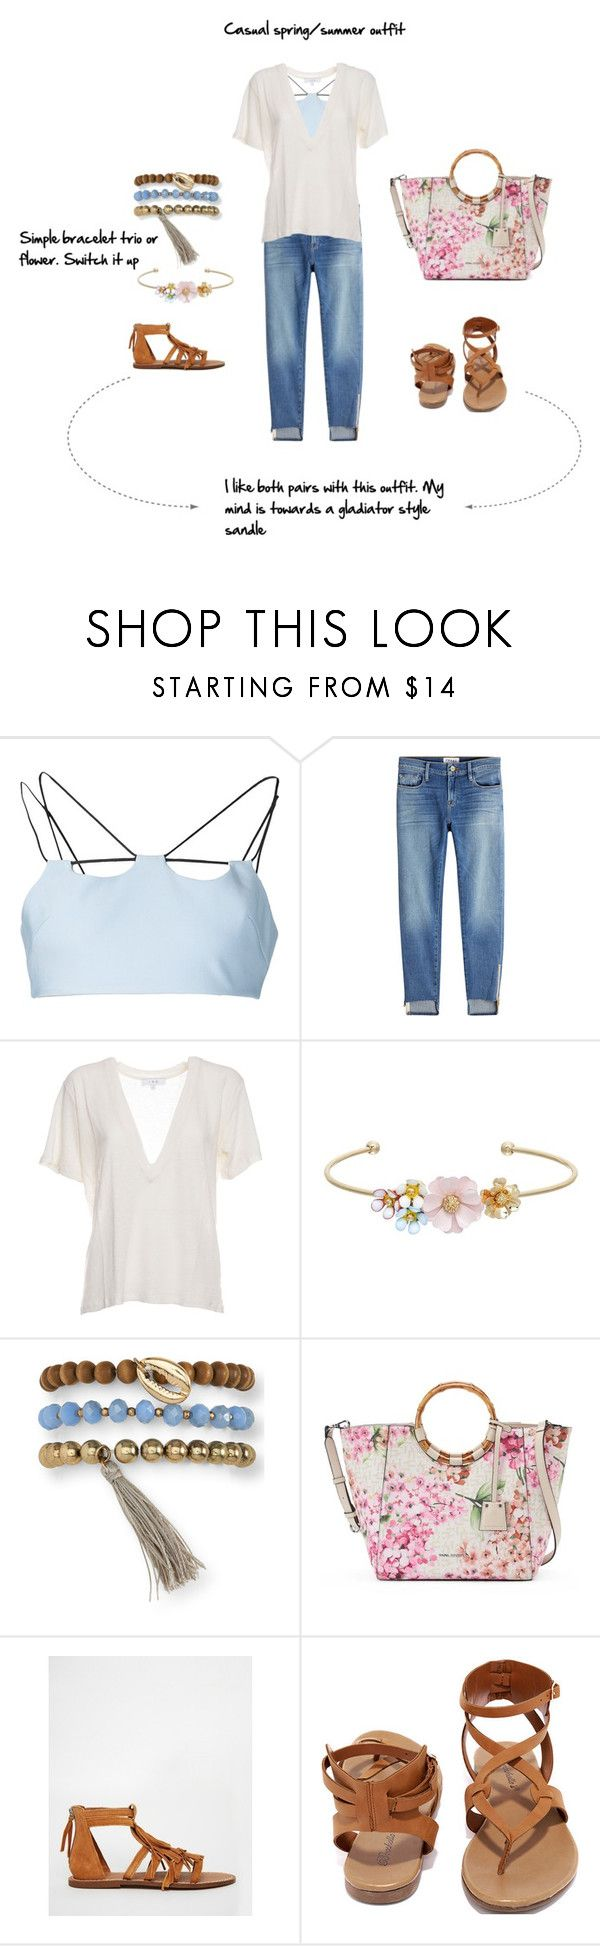 """Casual spring/summer outfit"" by mousters-8 on Polyvore featuring David Koma, Frame, IRO, LC Lauren Conrad, Aéropostale, Dana Buchman, MANGO and Breckelle's"